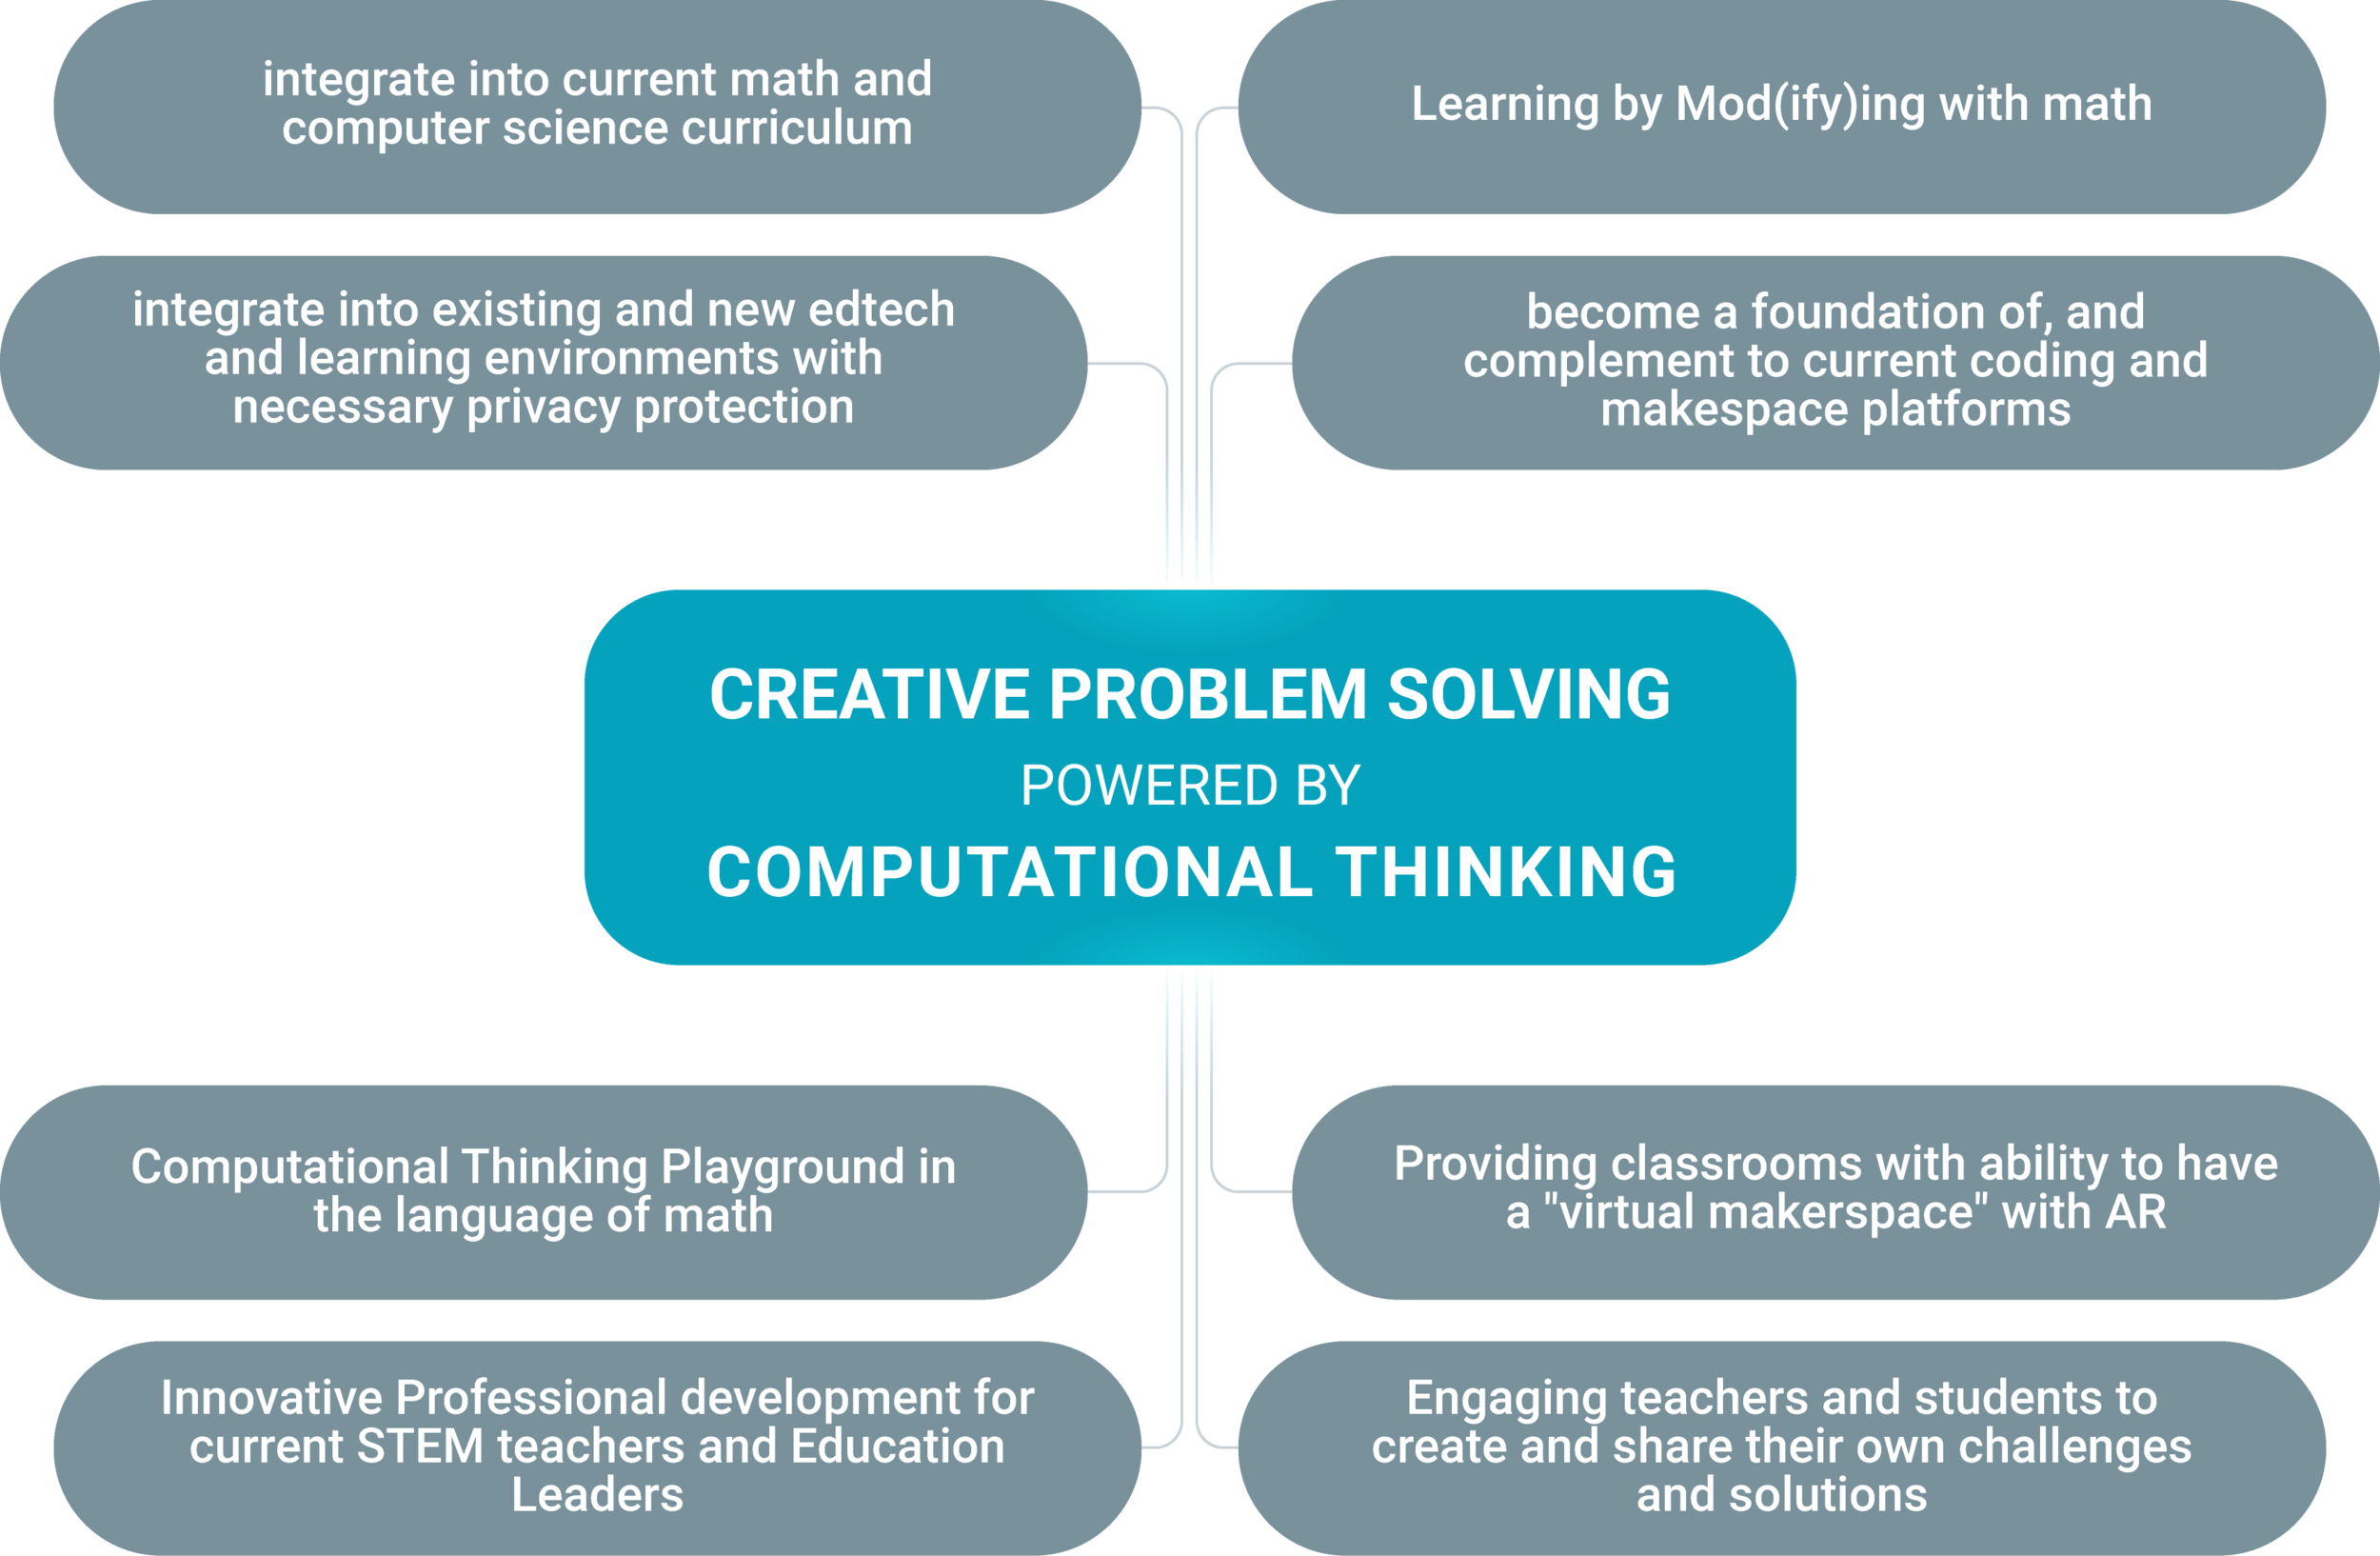 Creative Problem Solving powered by Computational Thinking